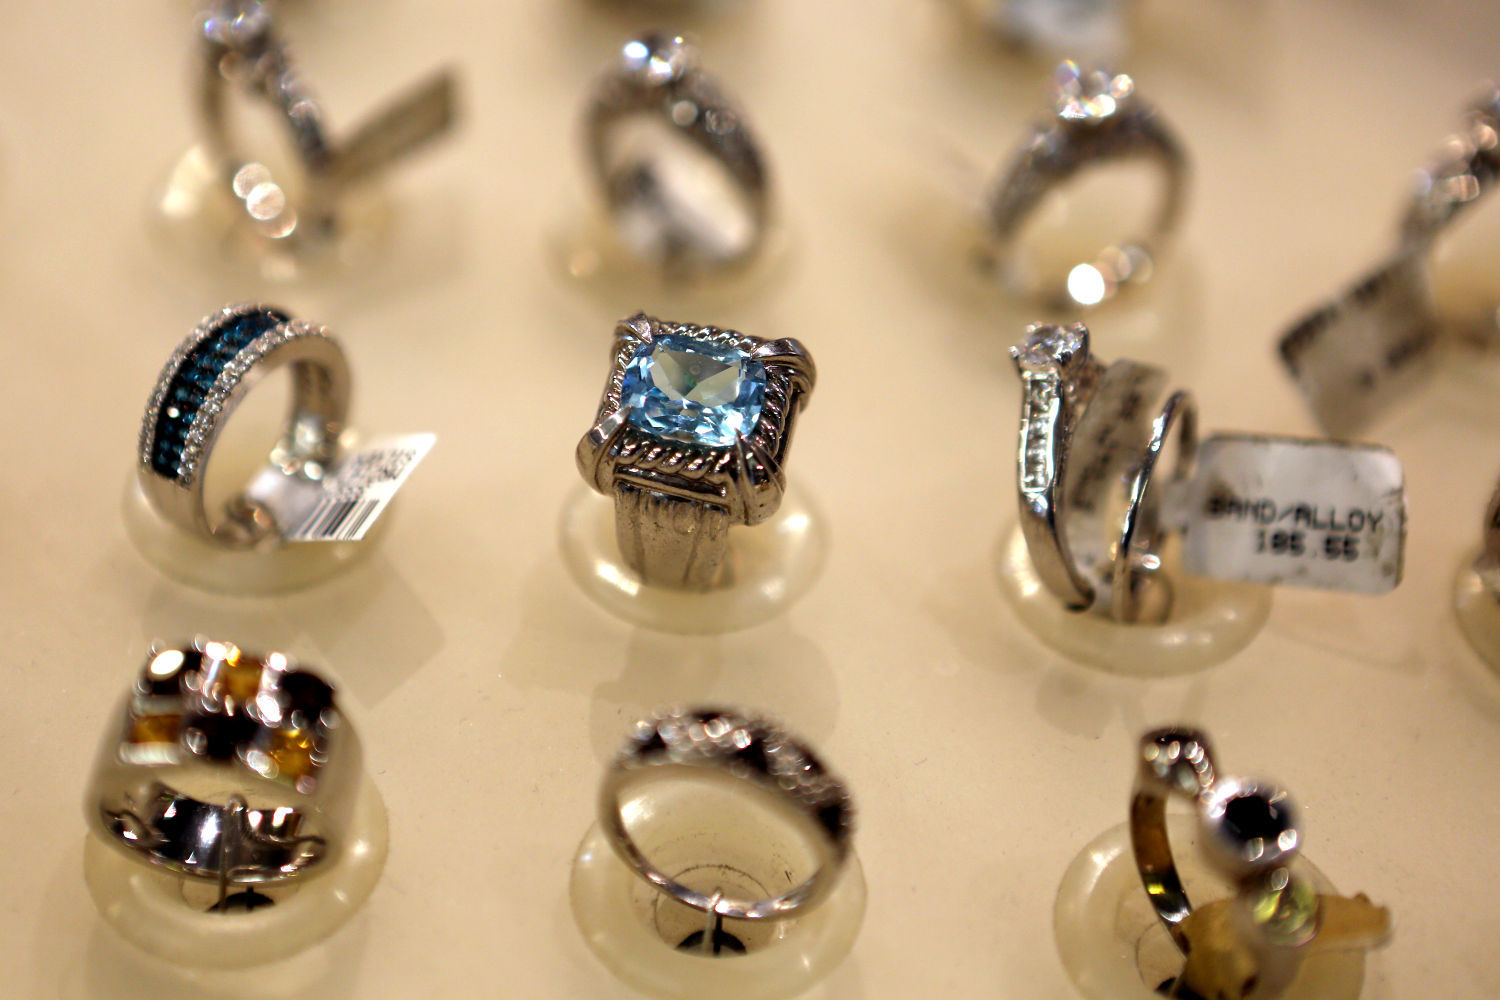 Radford jeweler moving business to prominent Christiansburg spot